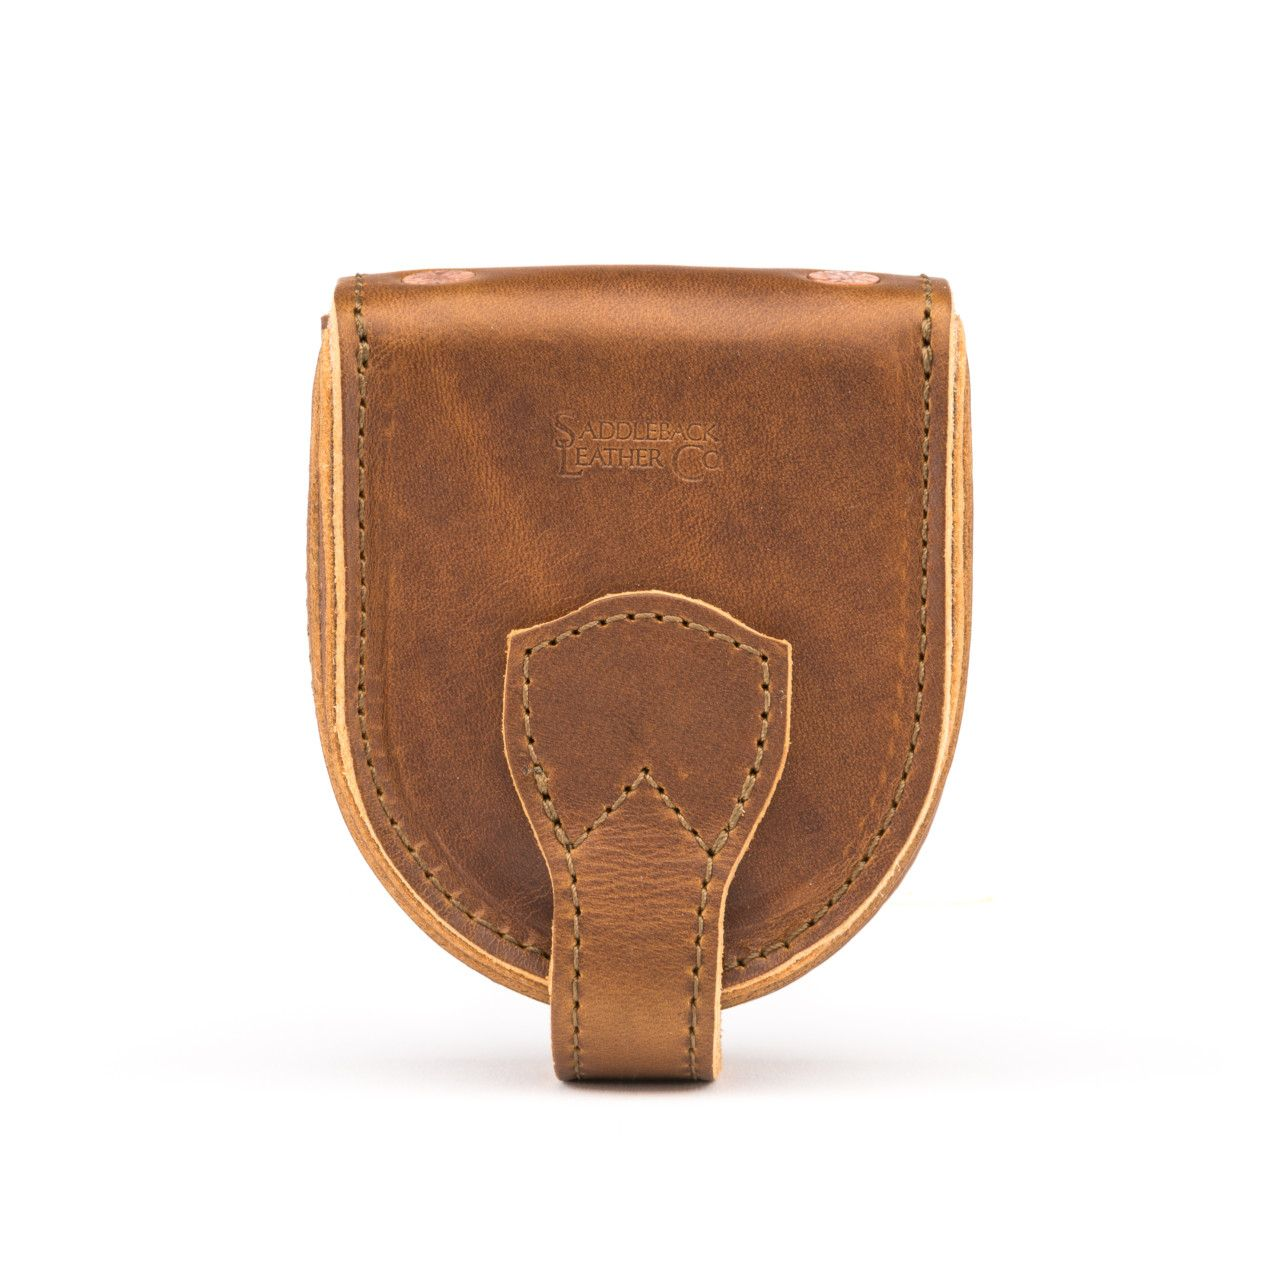 leather coin purse in tobacco leather